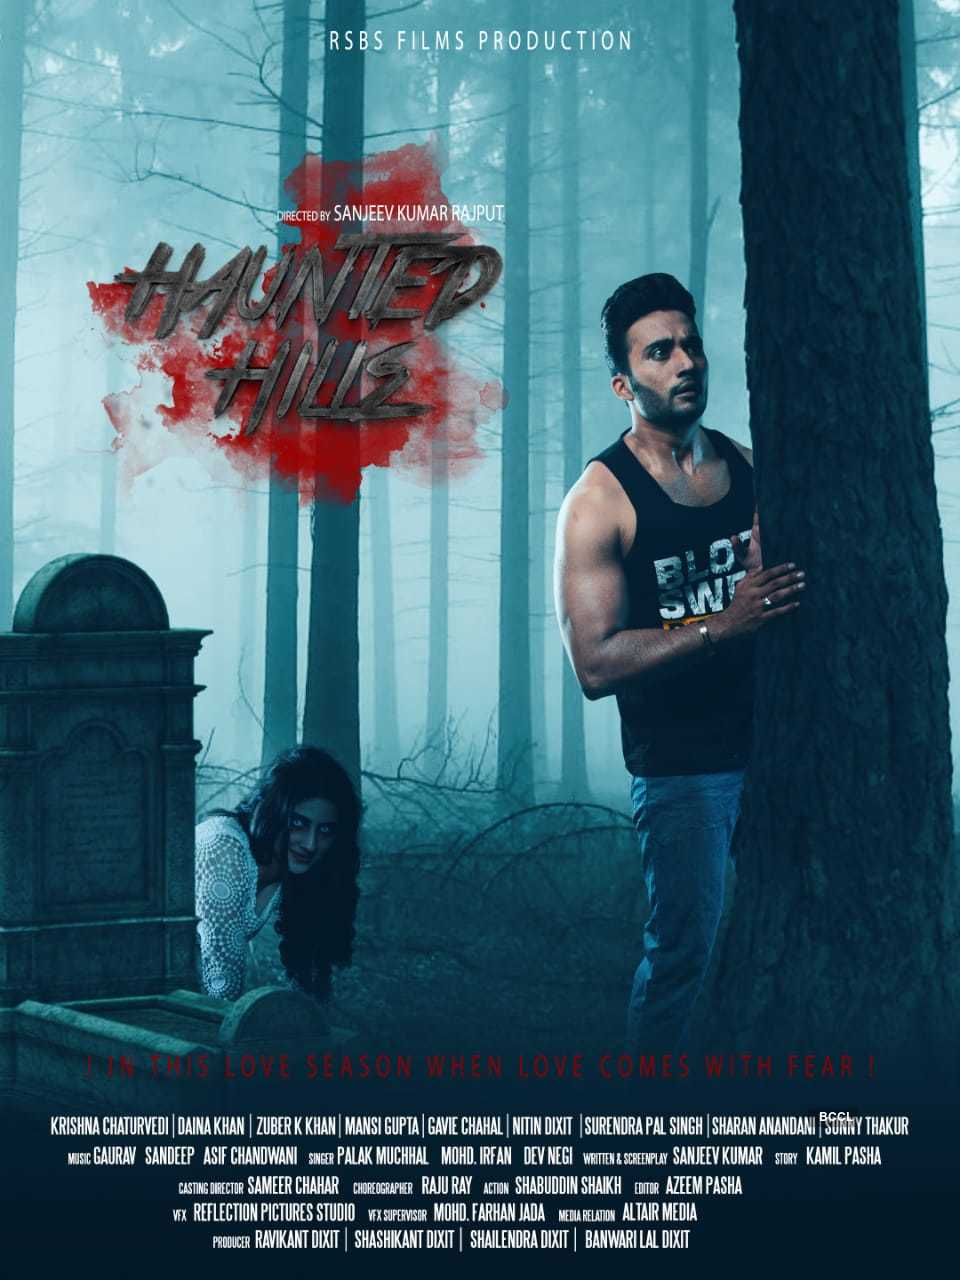 Actor Zuber K Khan starrer 'Haunted Hills' trailer out, see pictures